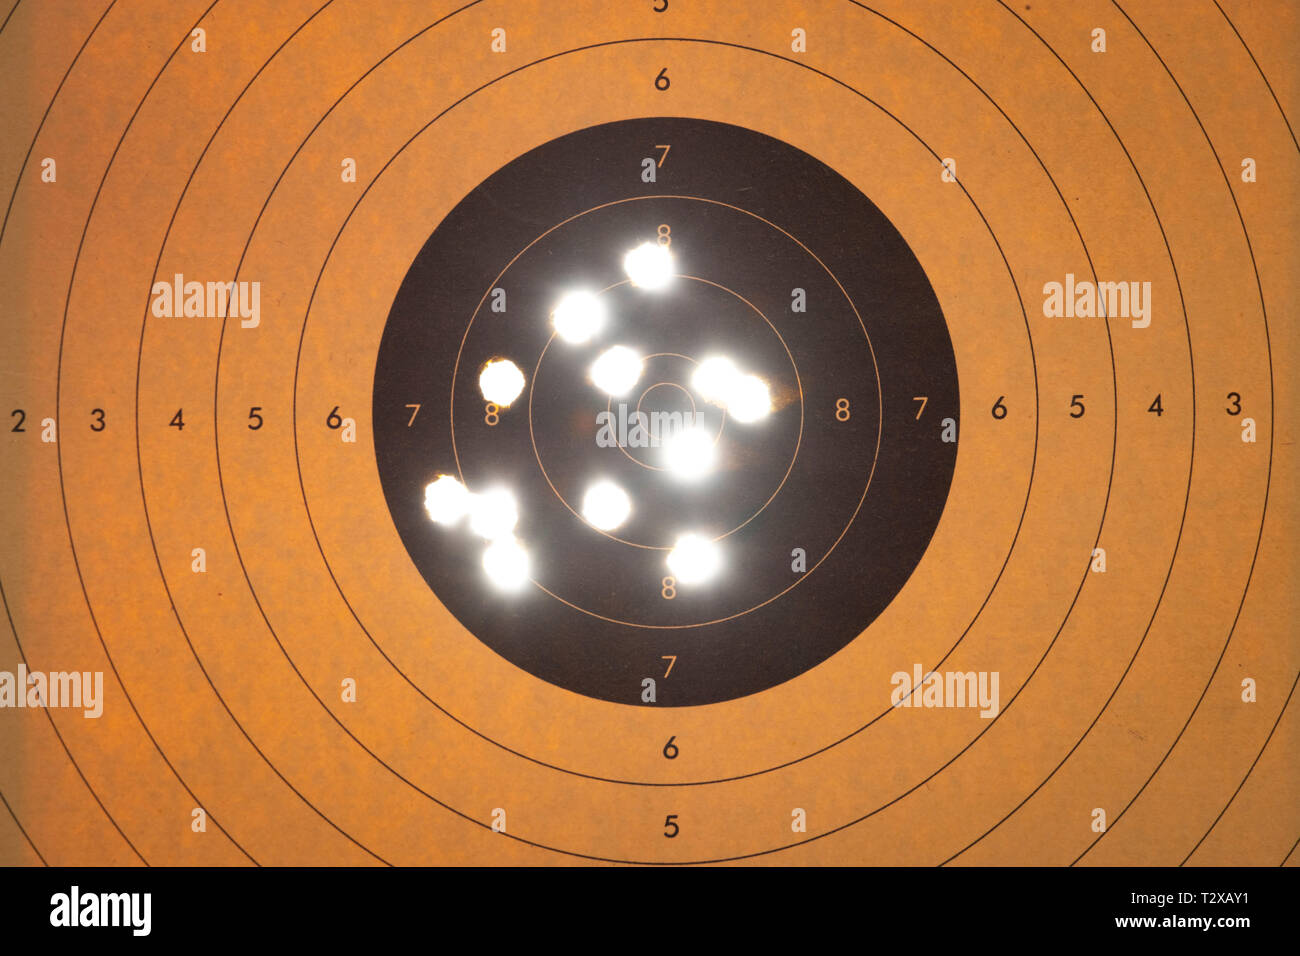 Close up of a shooting target with backlit bullet holes Stock Photo